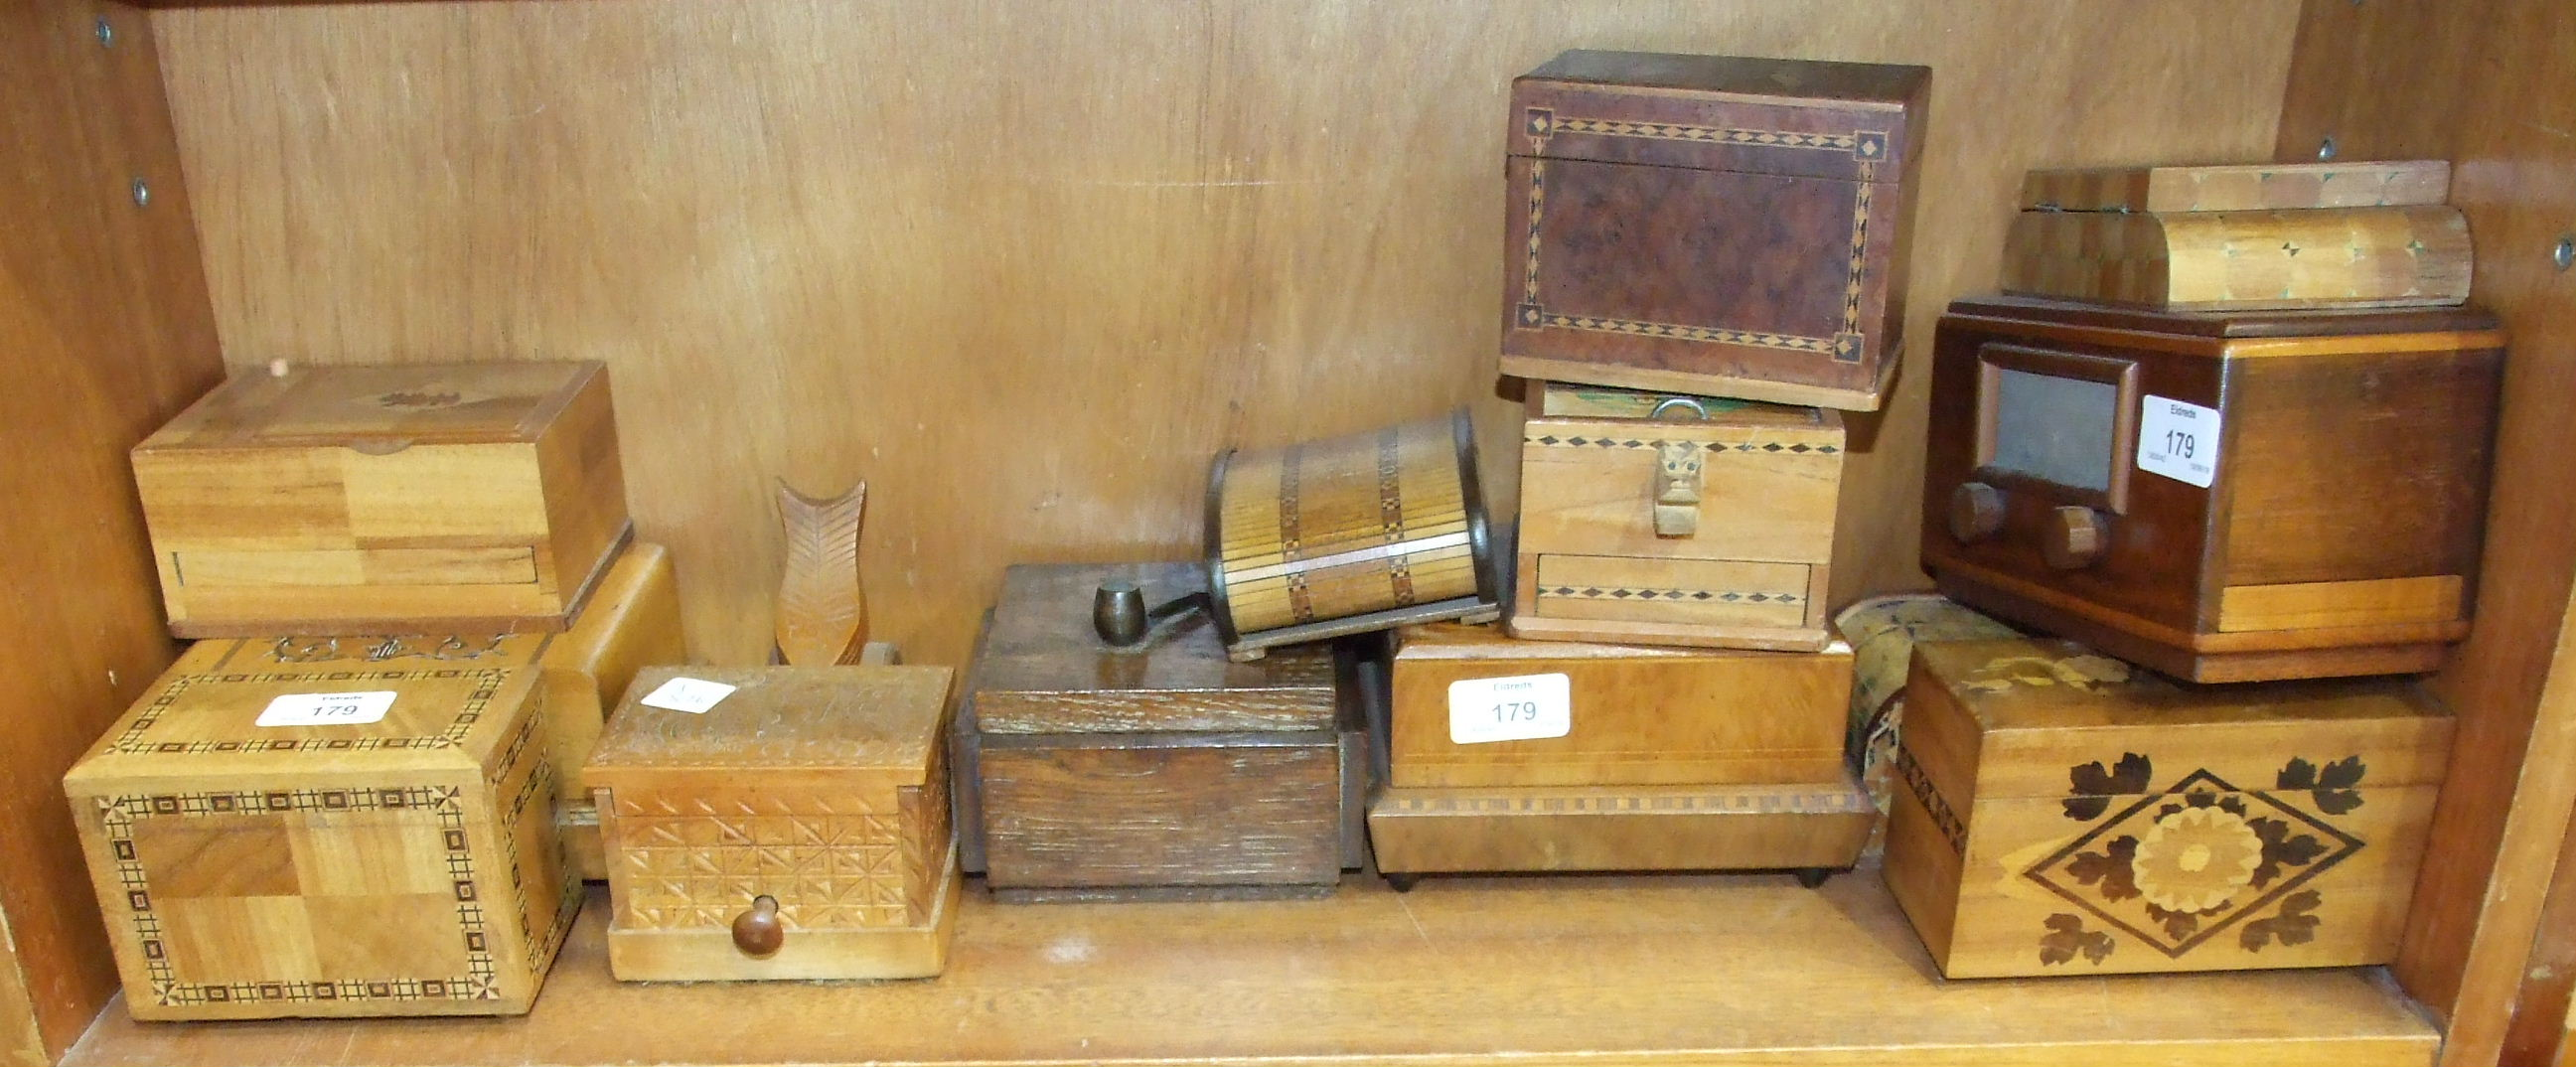 Lot 179 - A collection of wooden novelty cigarette boxes, many with parquetry decoration.